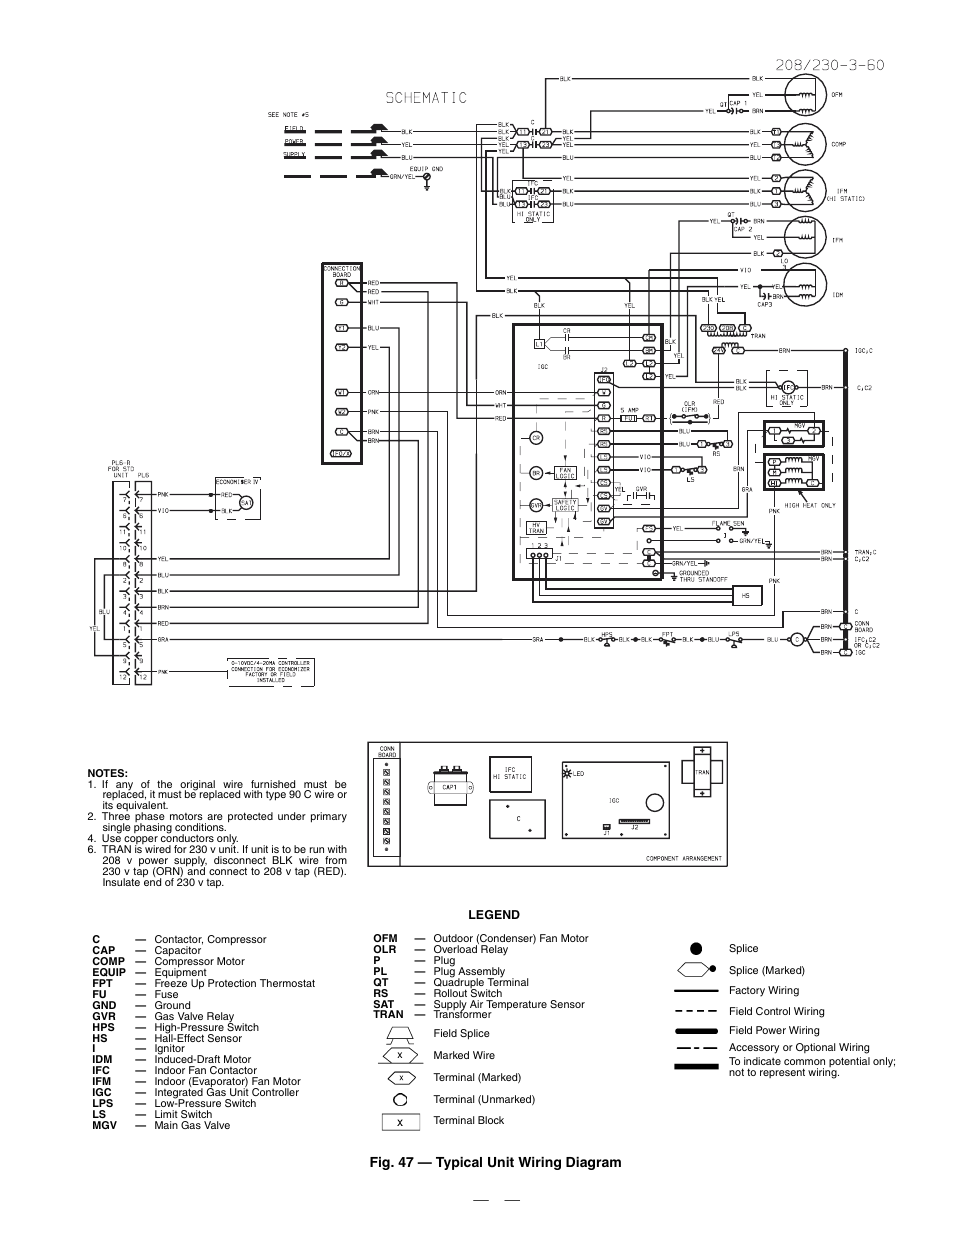 Bryant Condenser Wiring Diagram Diagrams For Relay 41 Residential A C